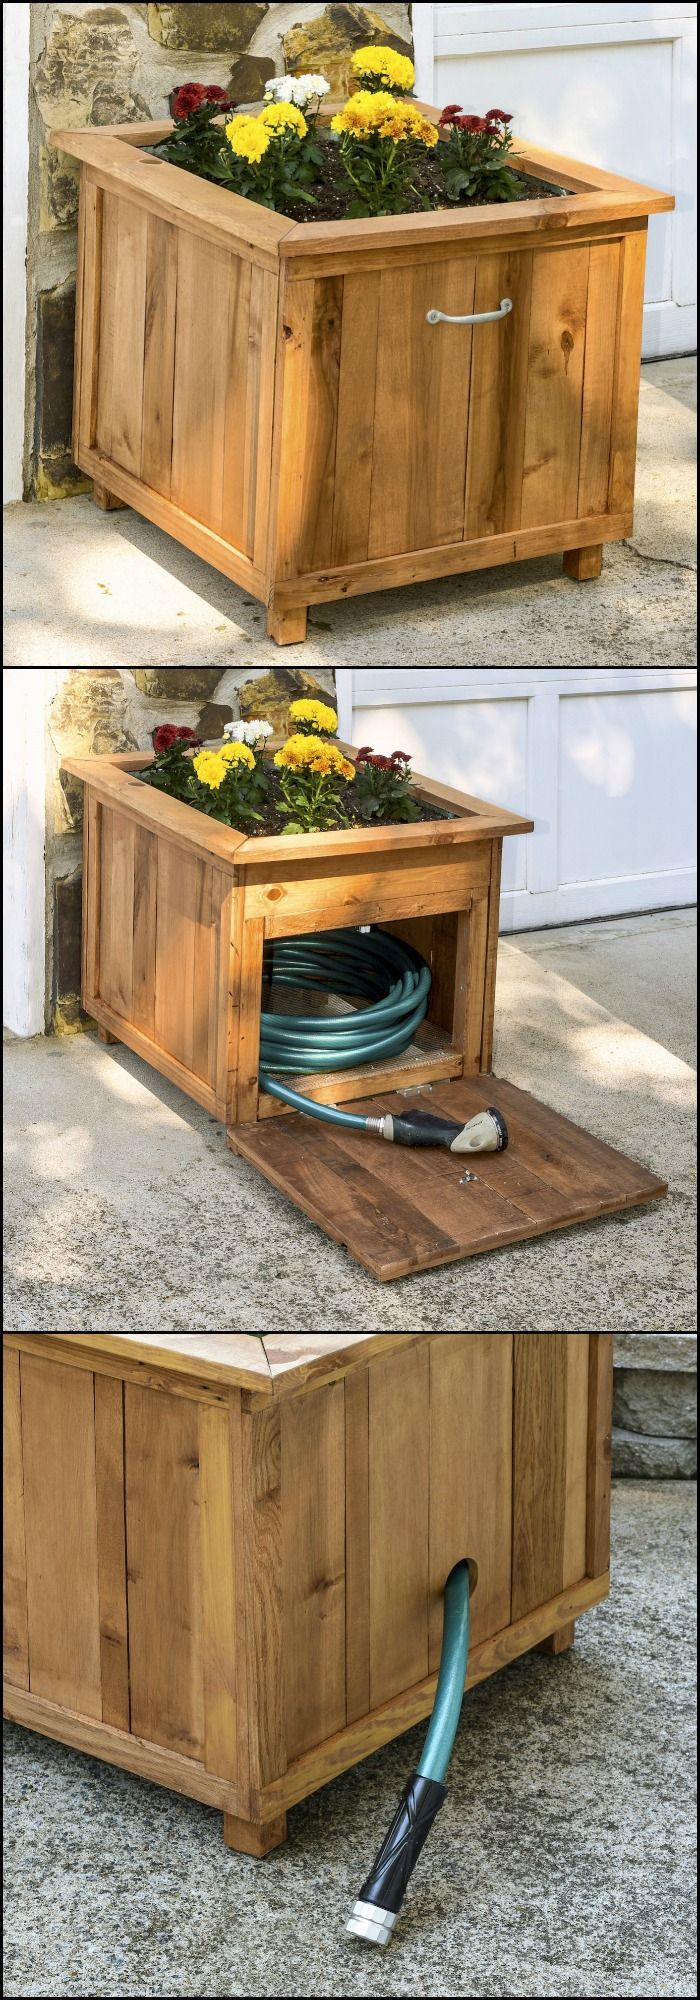 Best 25+ Hose storage ideas on Pinterest | Outdoor trash cans ...